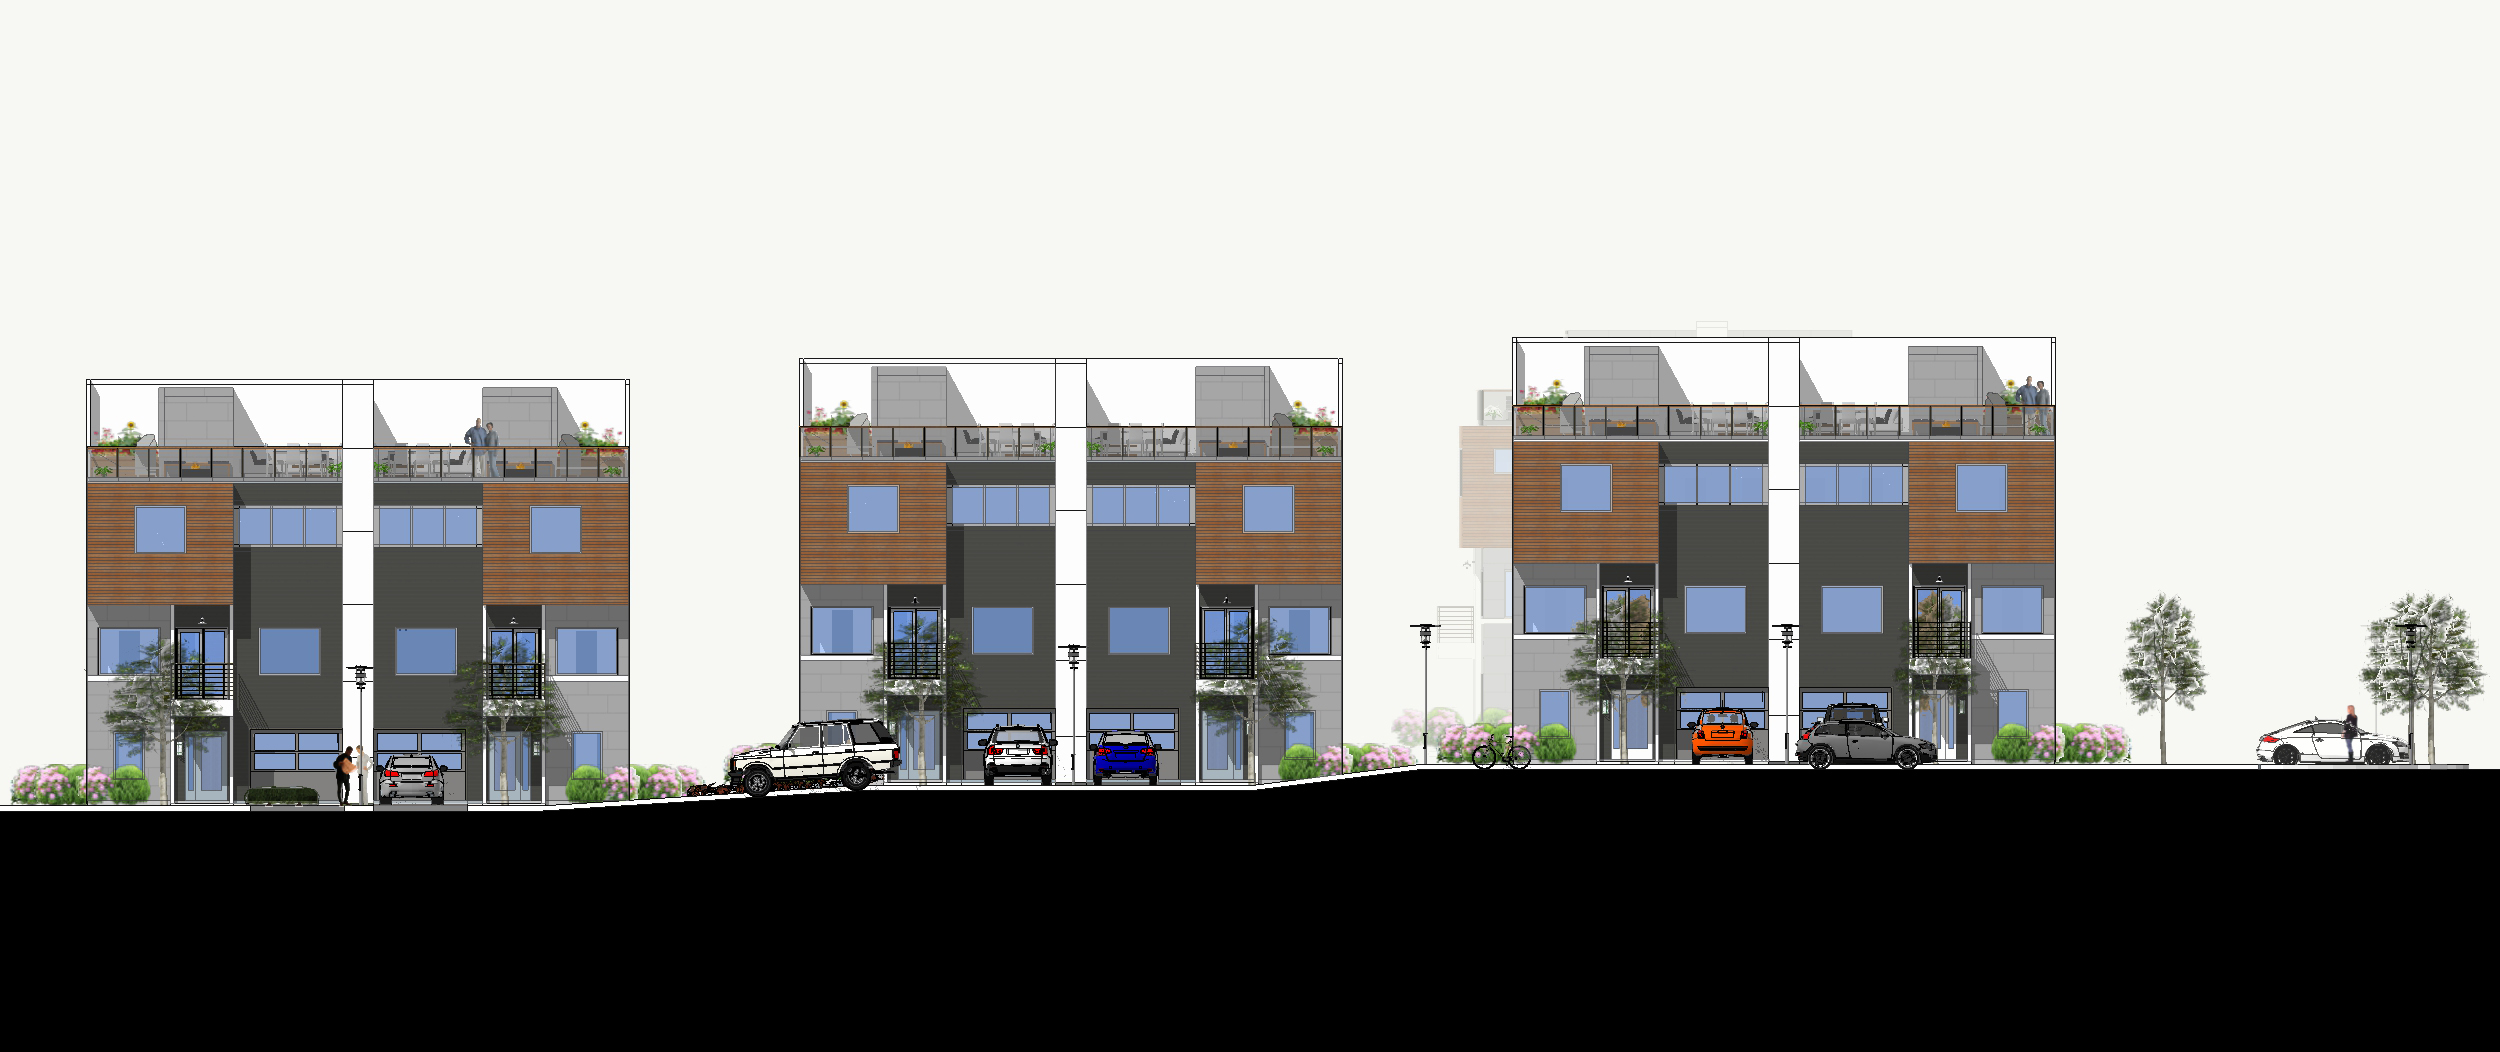 Front Elevation In 2d : Urban trends real estate development building